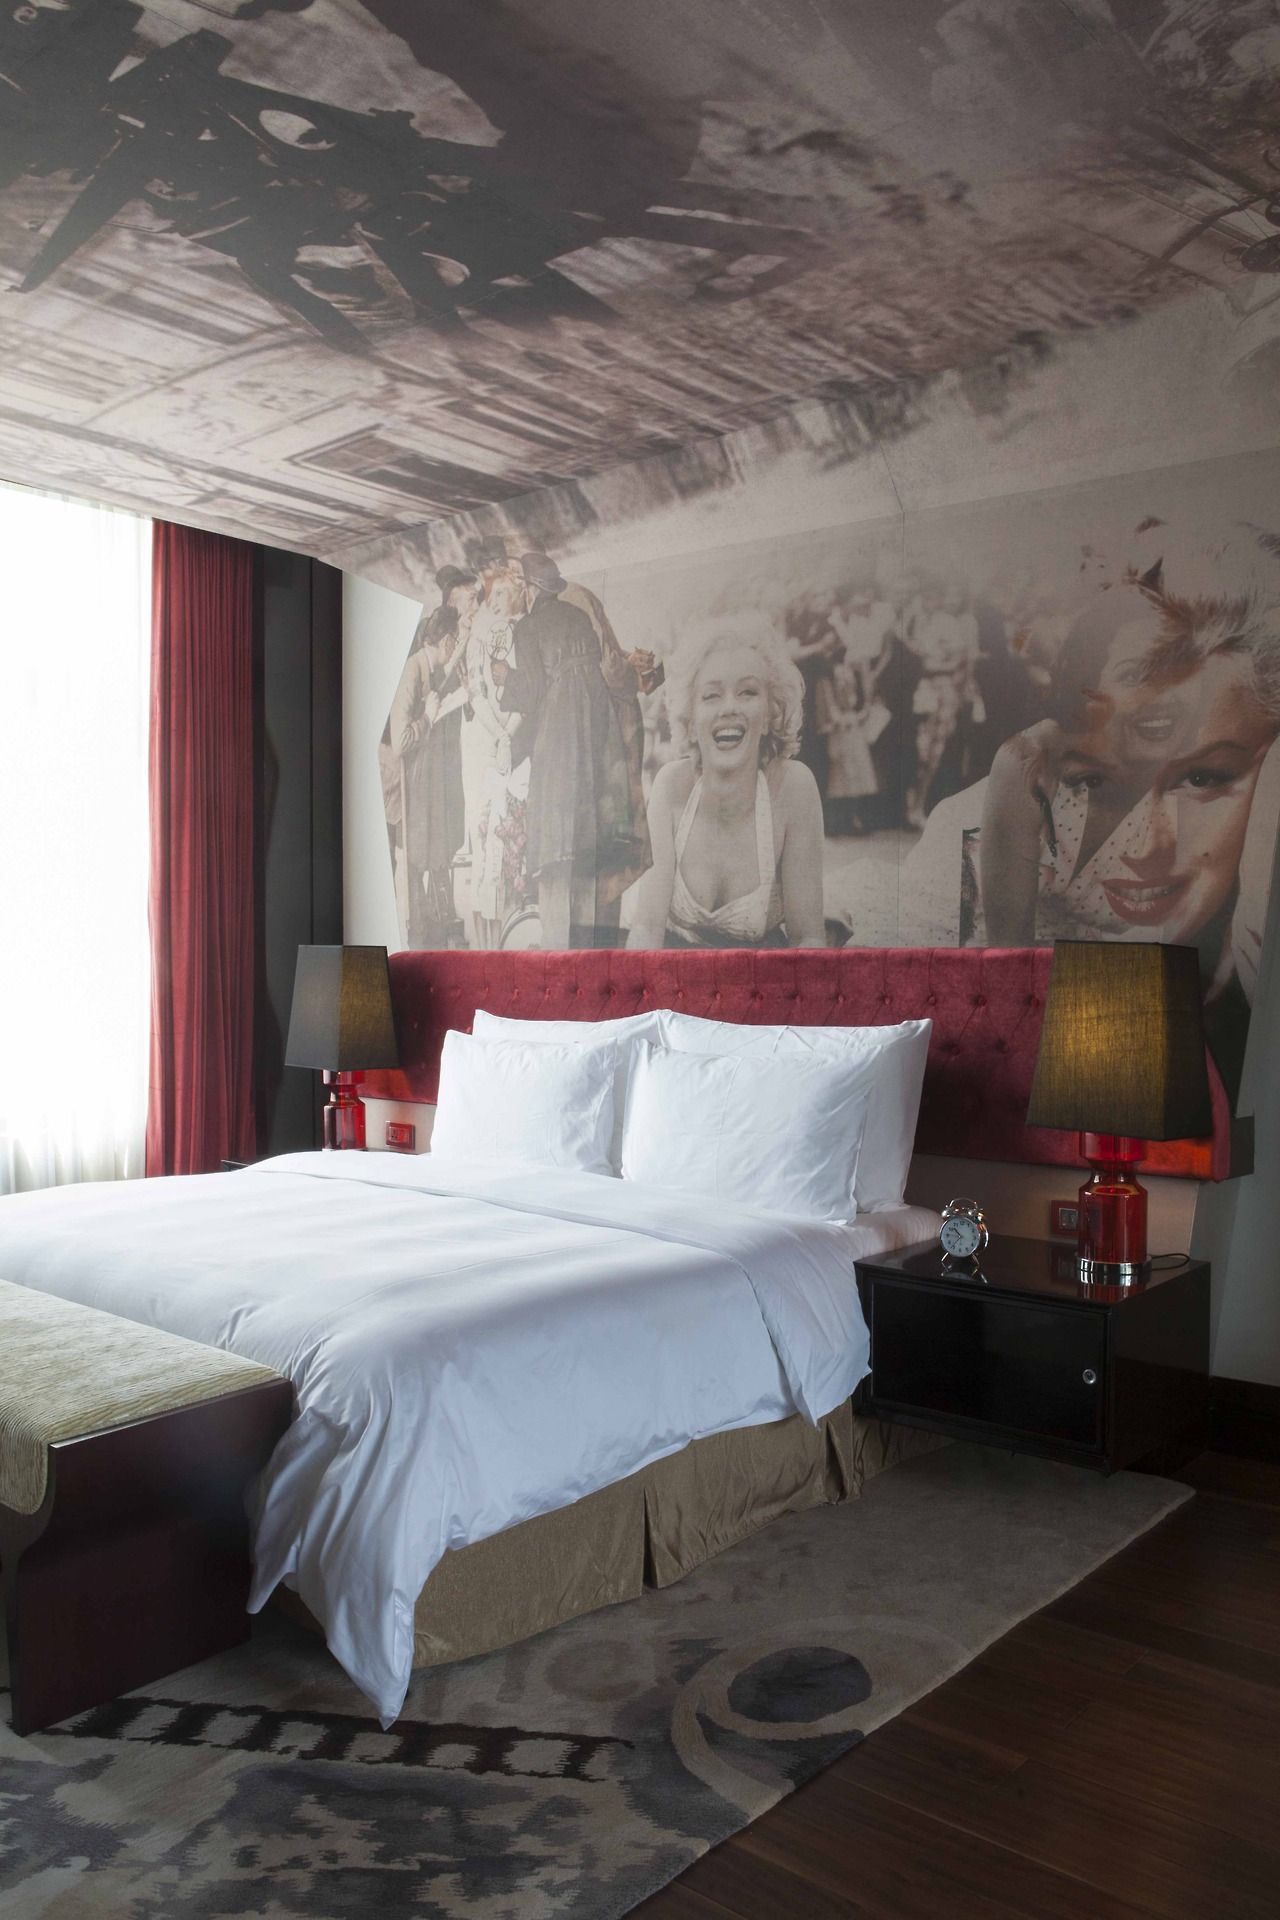 Old Hollywood themed room at Hotel Indigo,Tianjin.